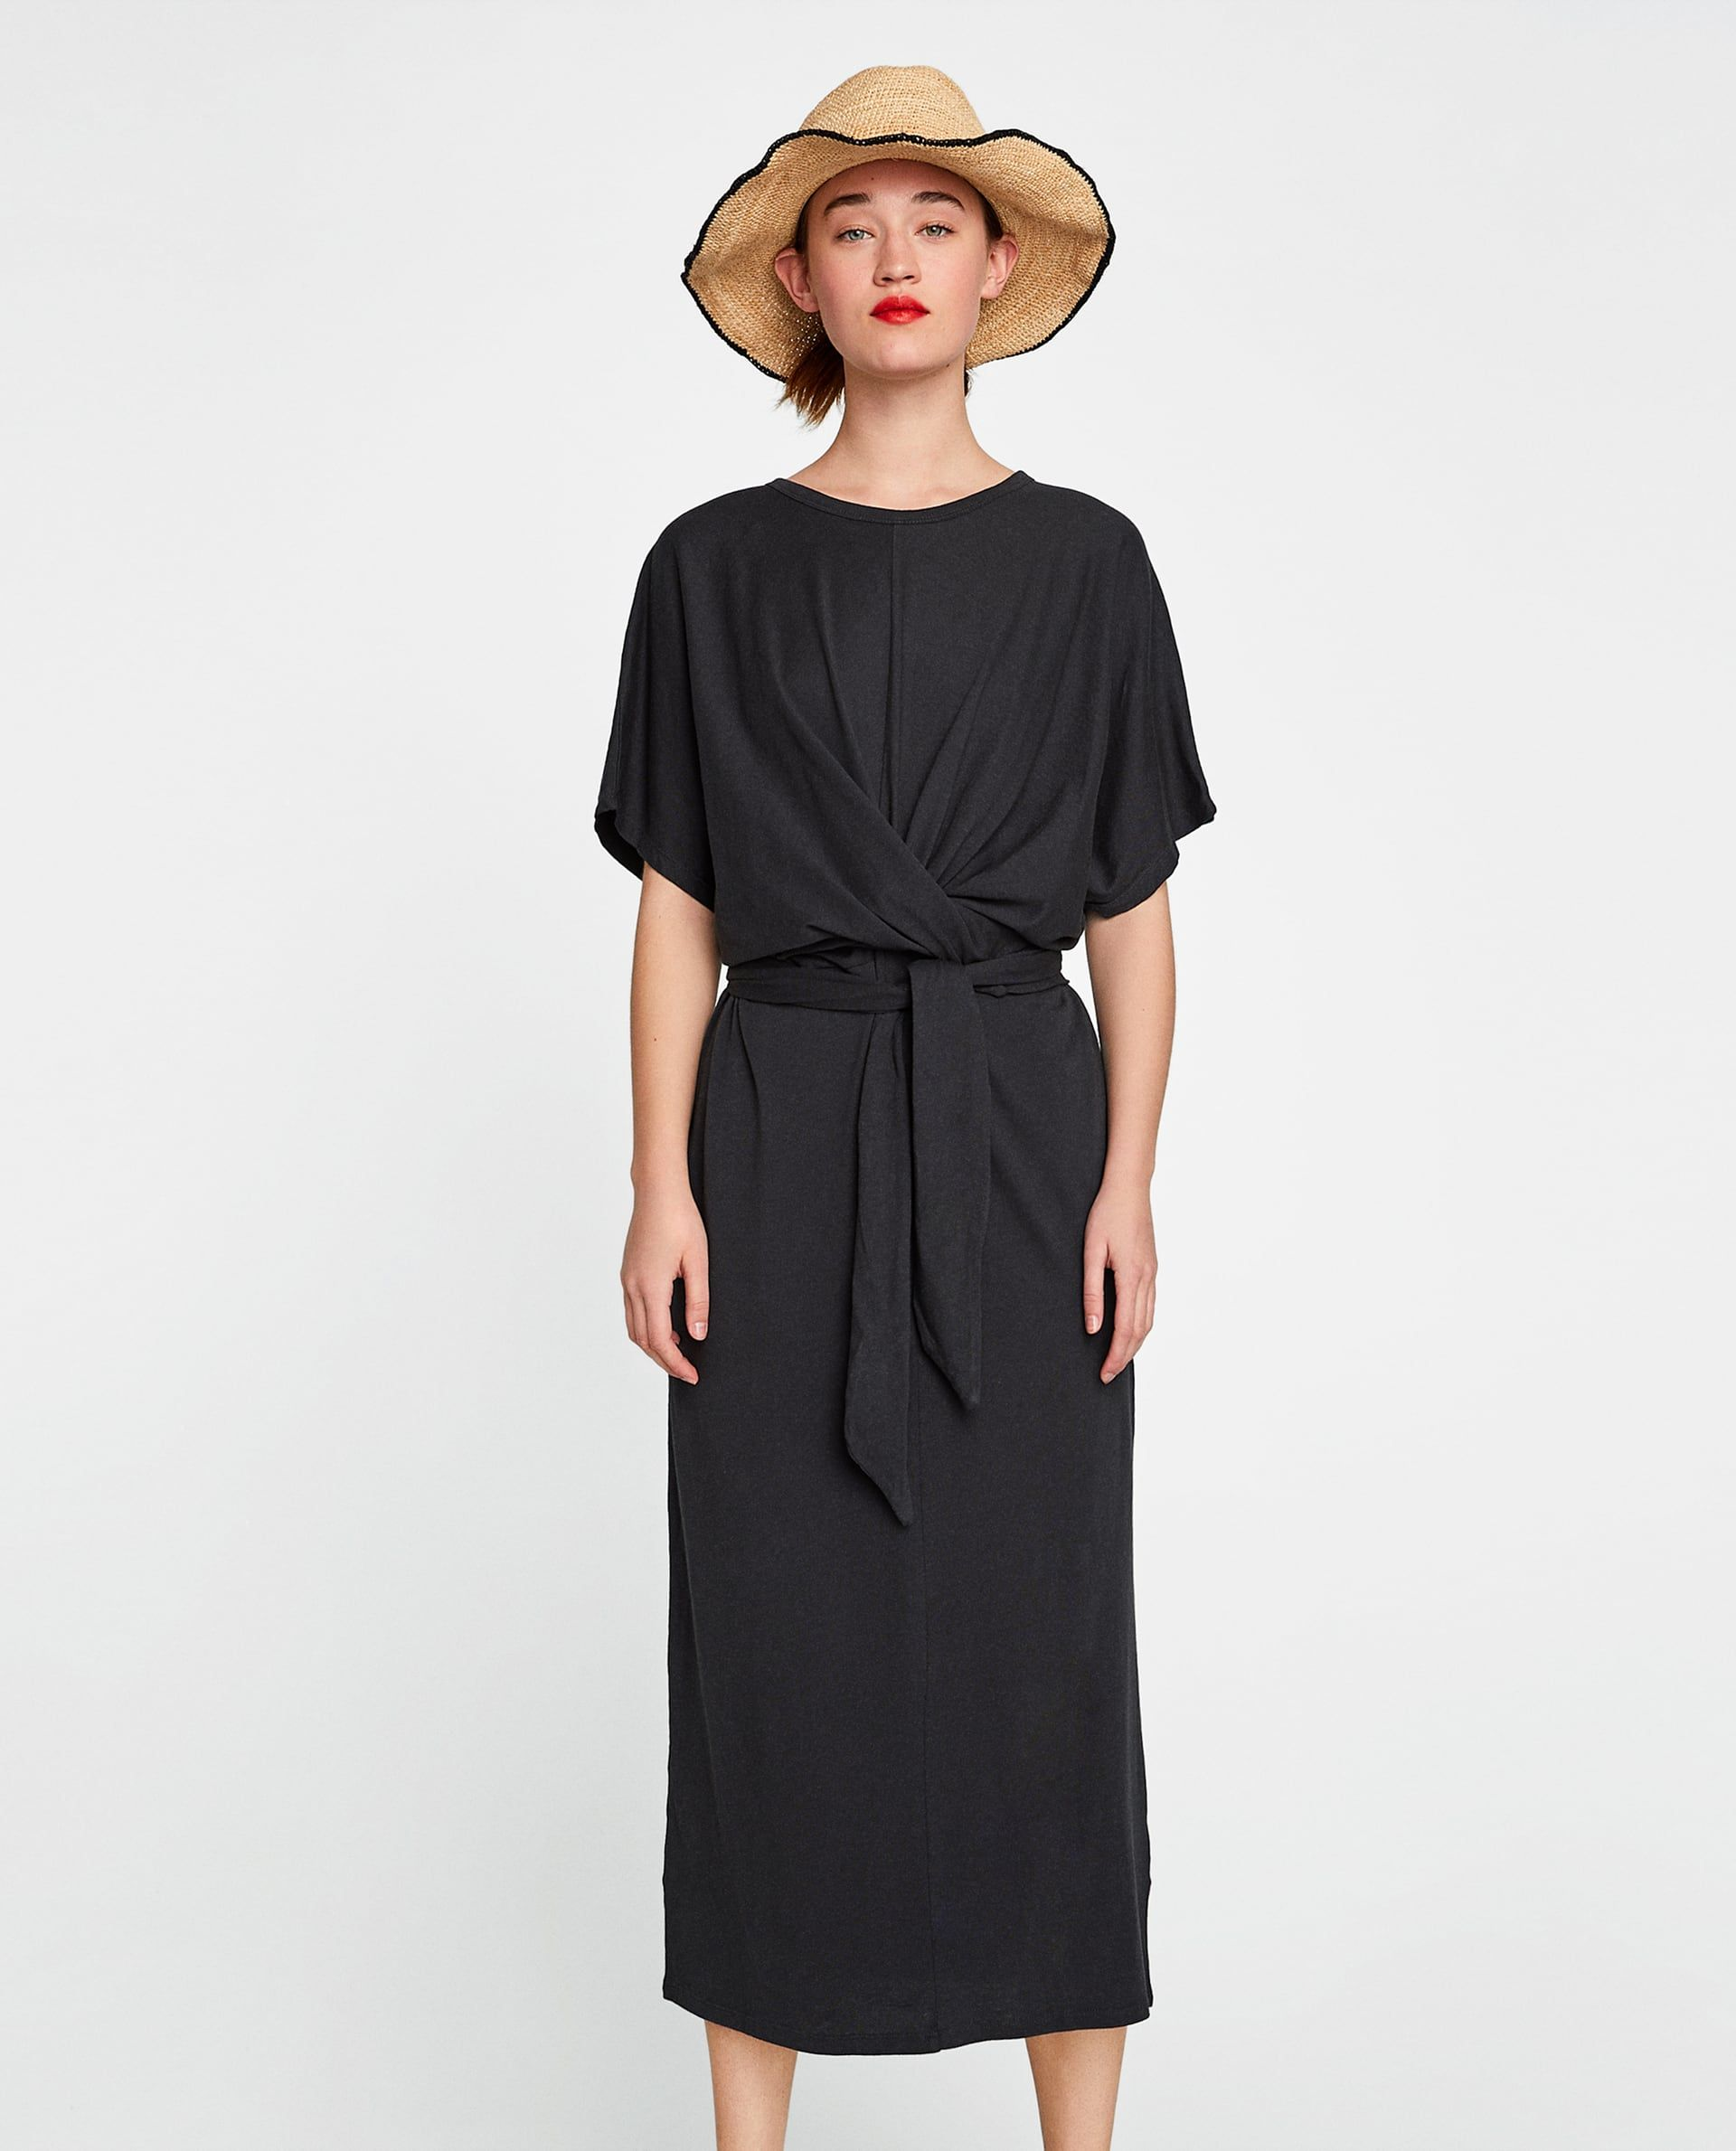 Zara Woman Long Dress With Knot Lange Kleider Modestil Professionelle Outfits